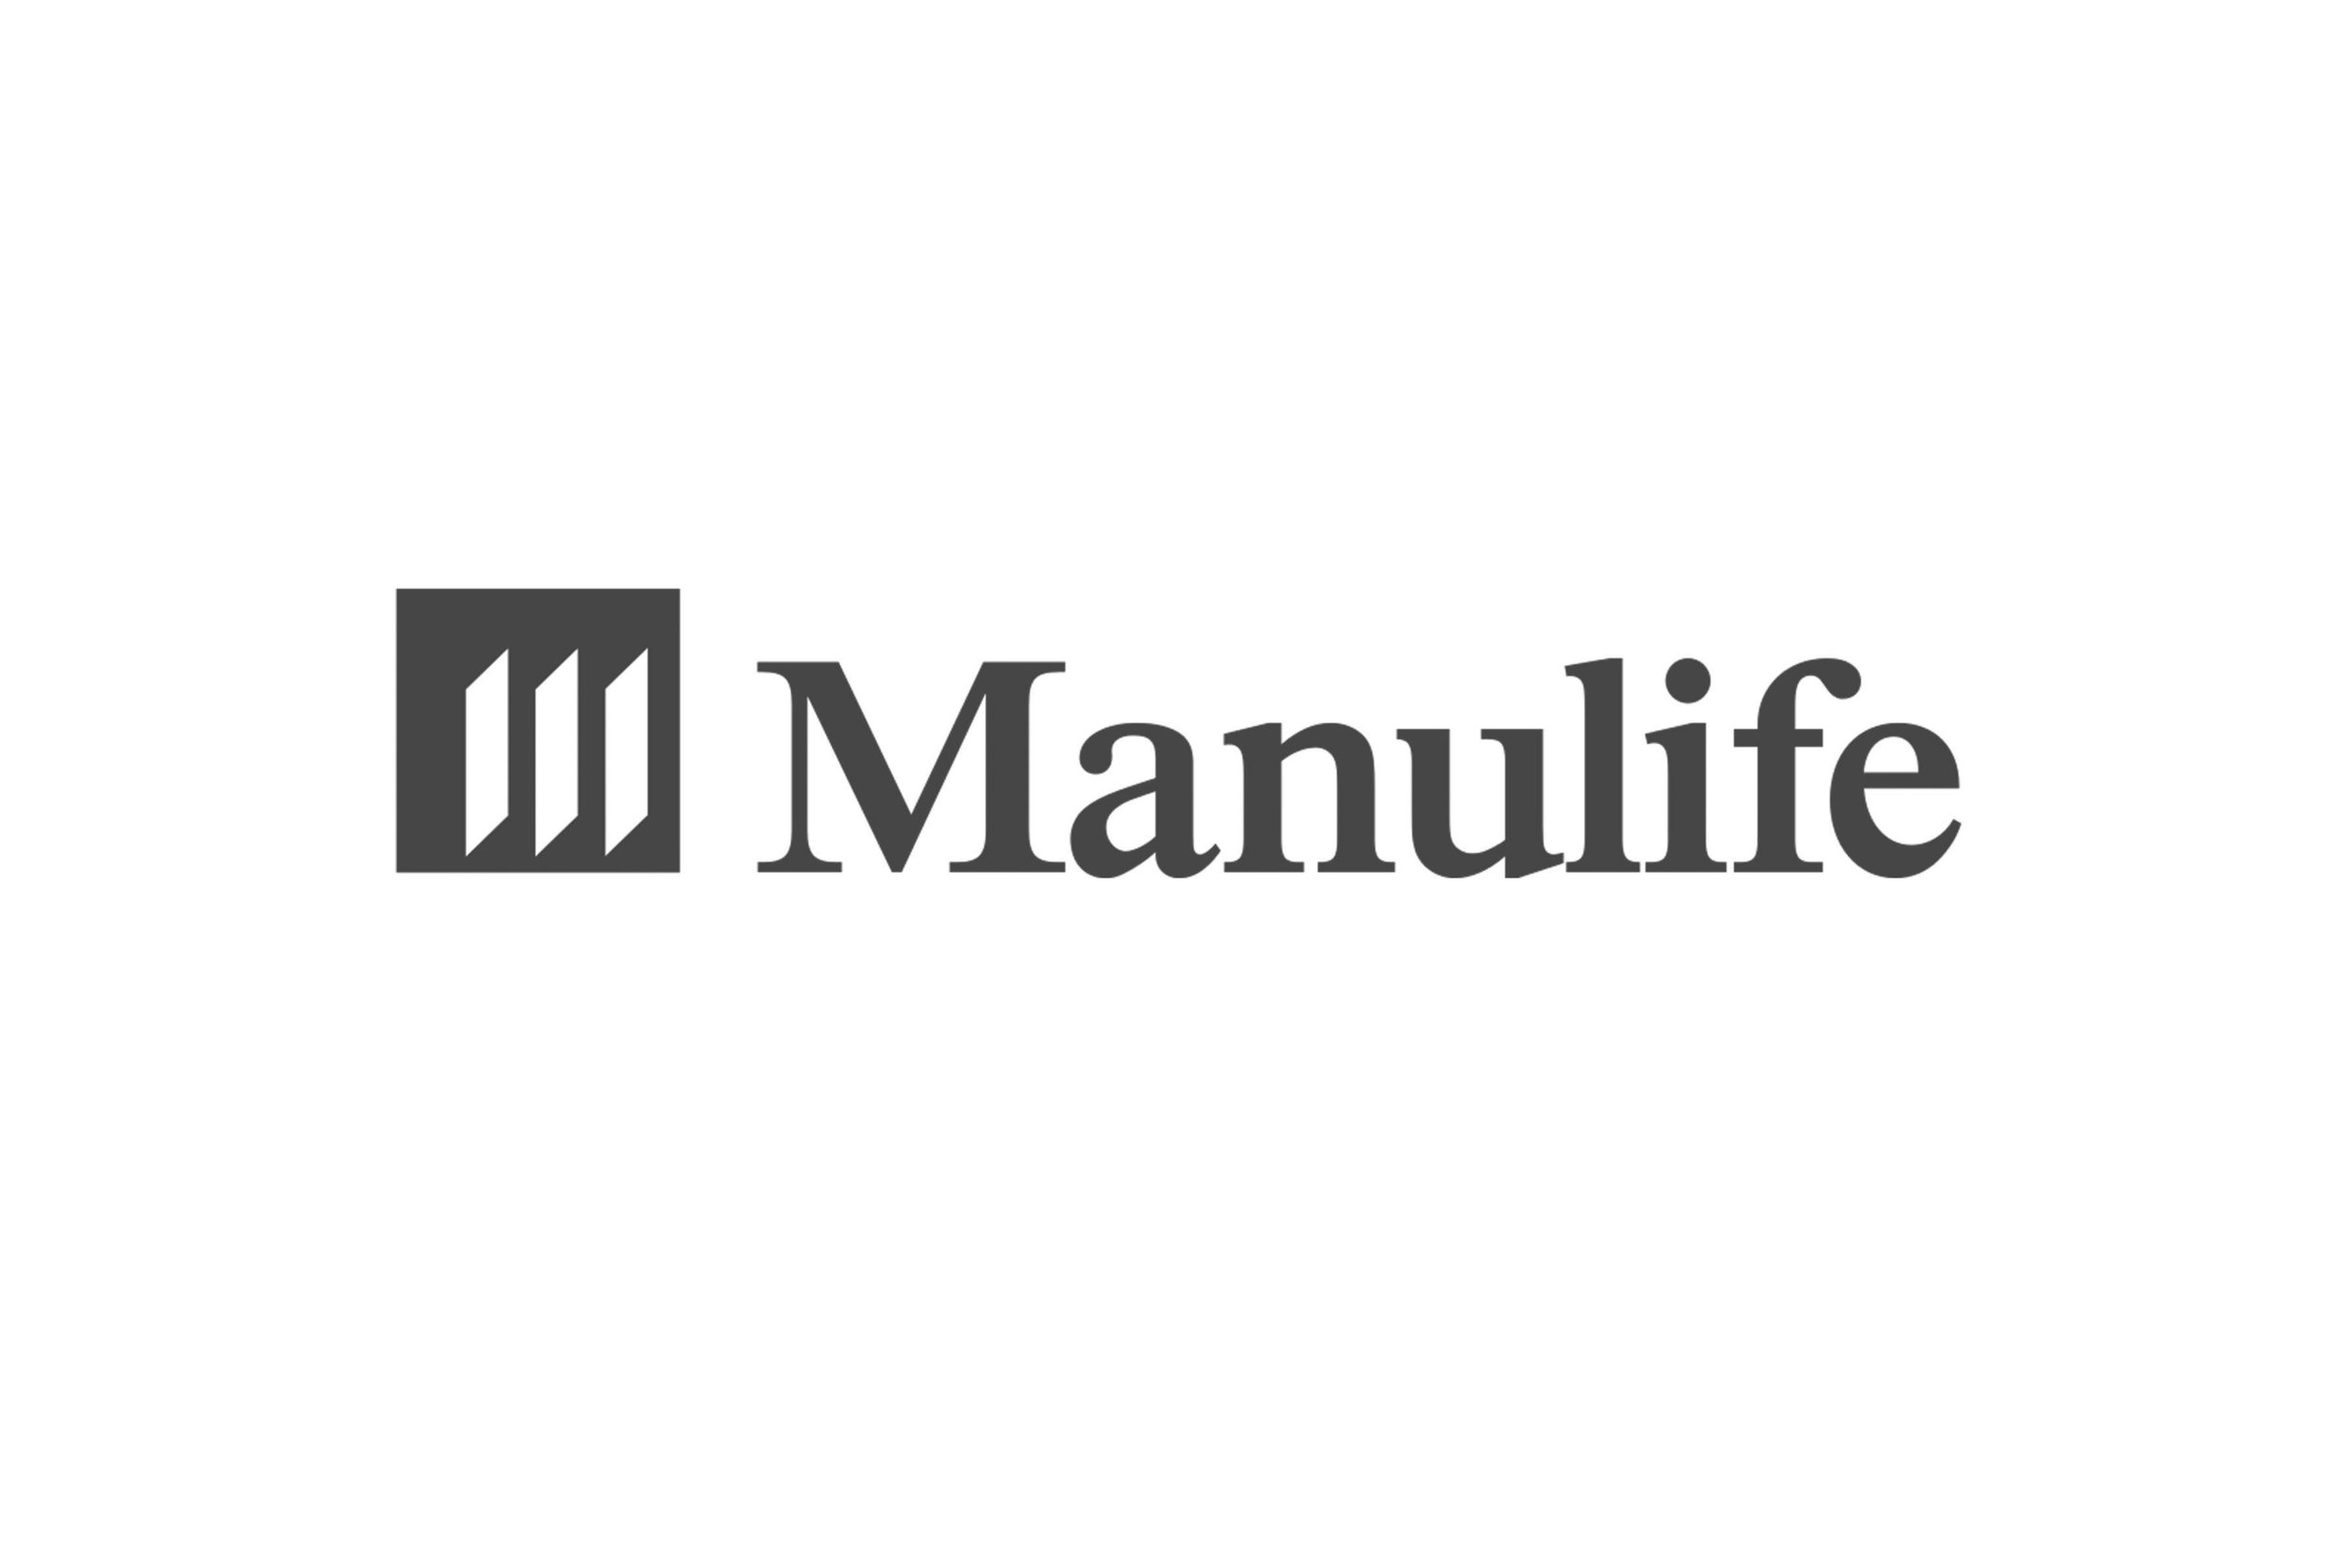 Untitled1_0000s_0019_JEB-ClientLogos_0001s_0019_Manulife.png.jpg.jpg